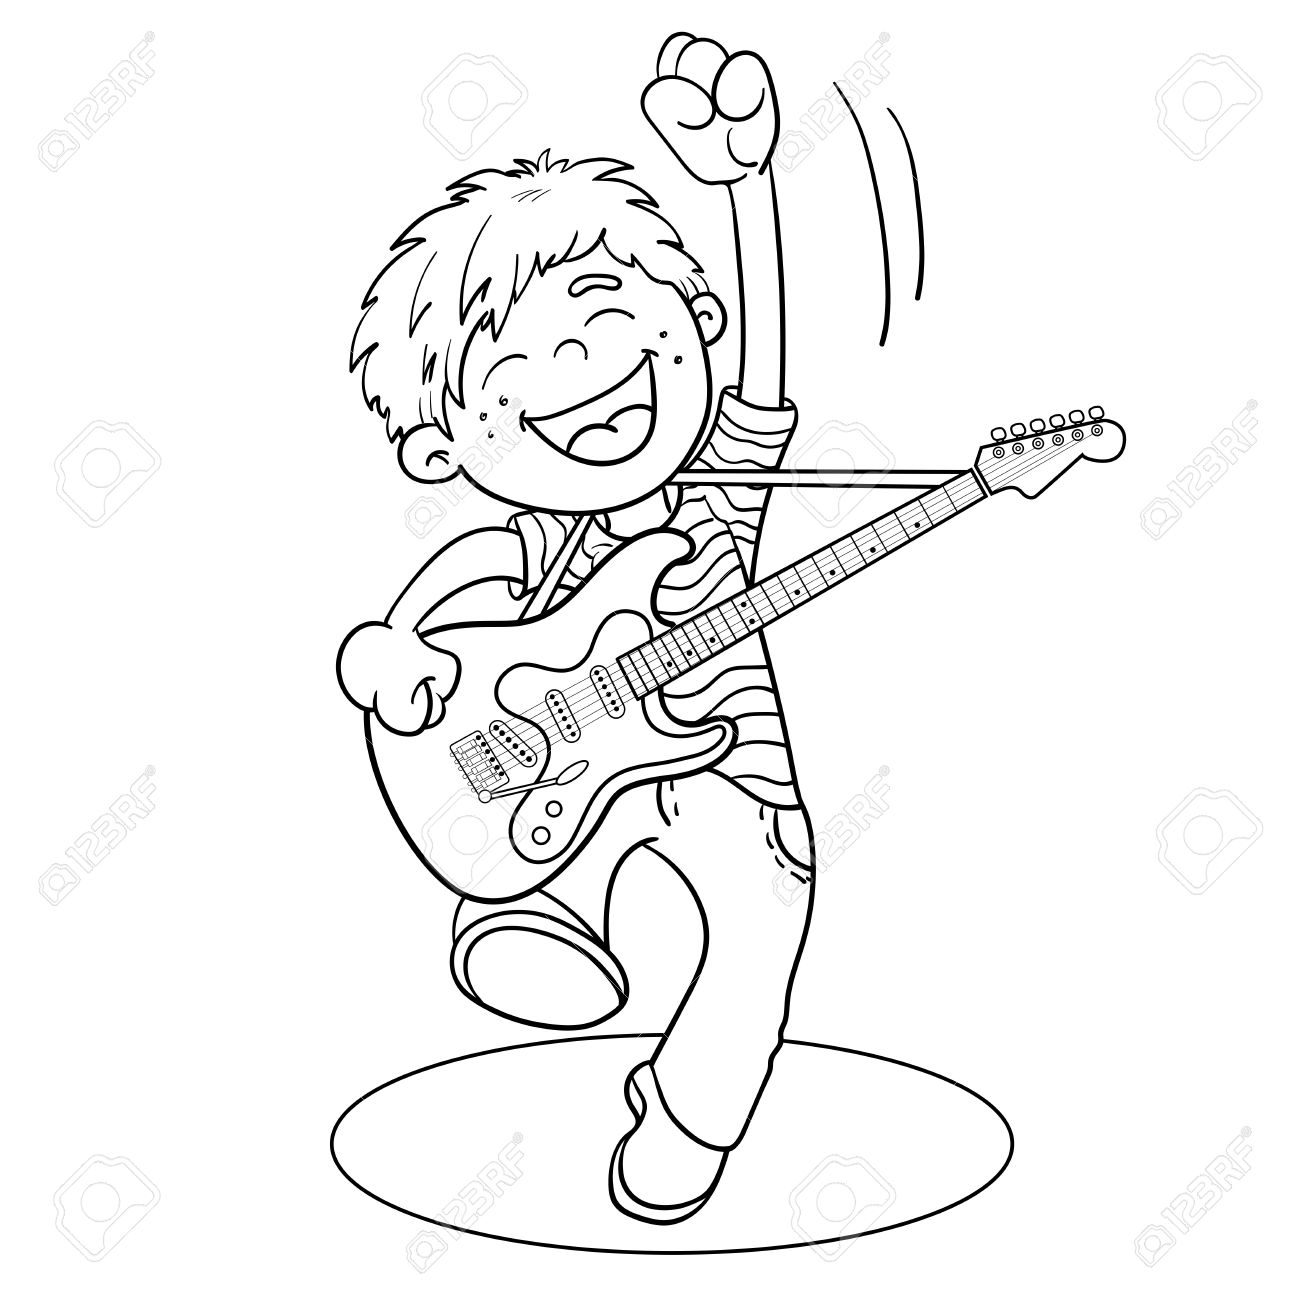 Coloring Page Outline Of A Cartoon Boy With Guitar Isolated On White Background Stock Vector